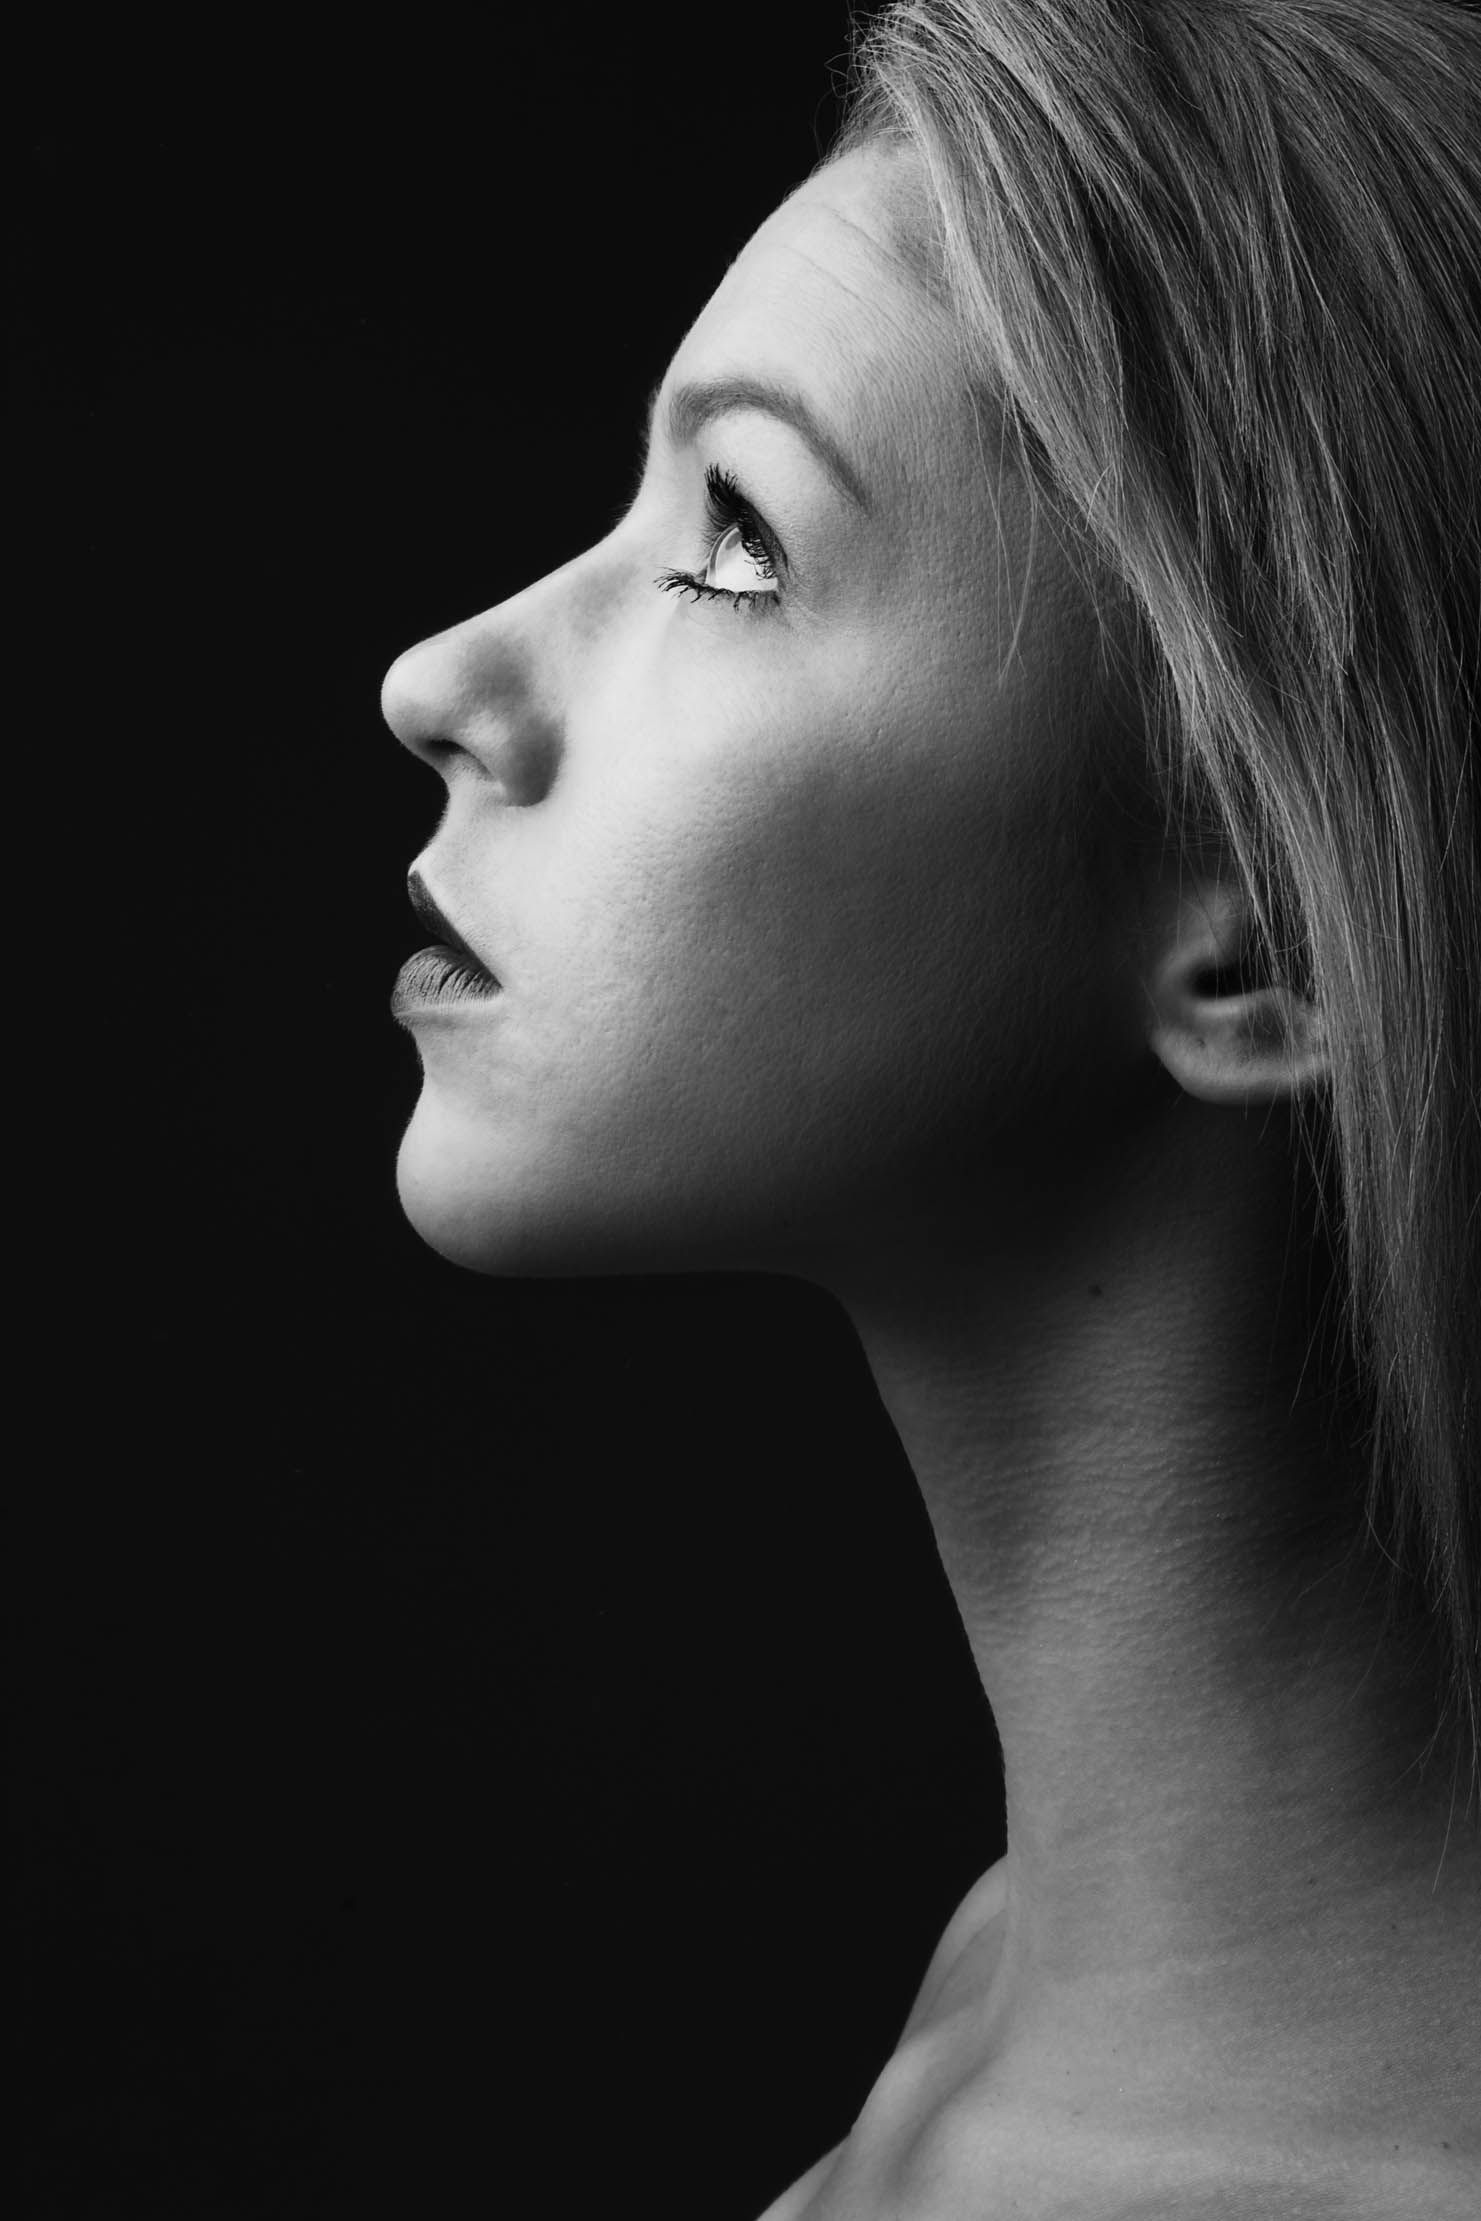 Black and white portrait side view portrait photography in 2019